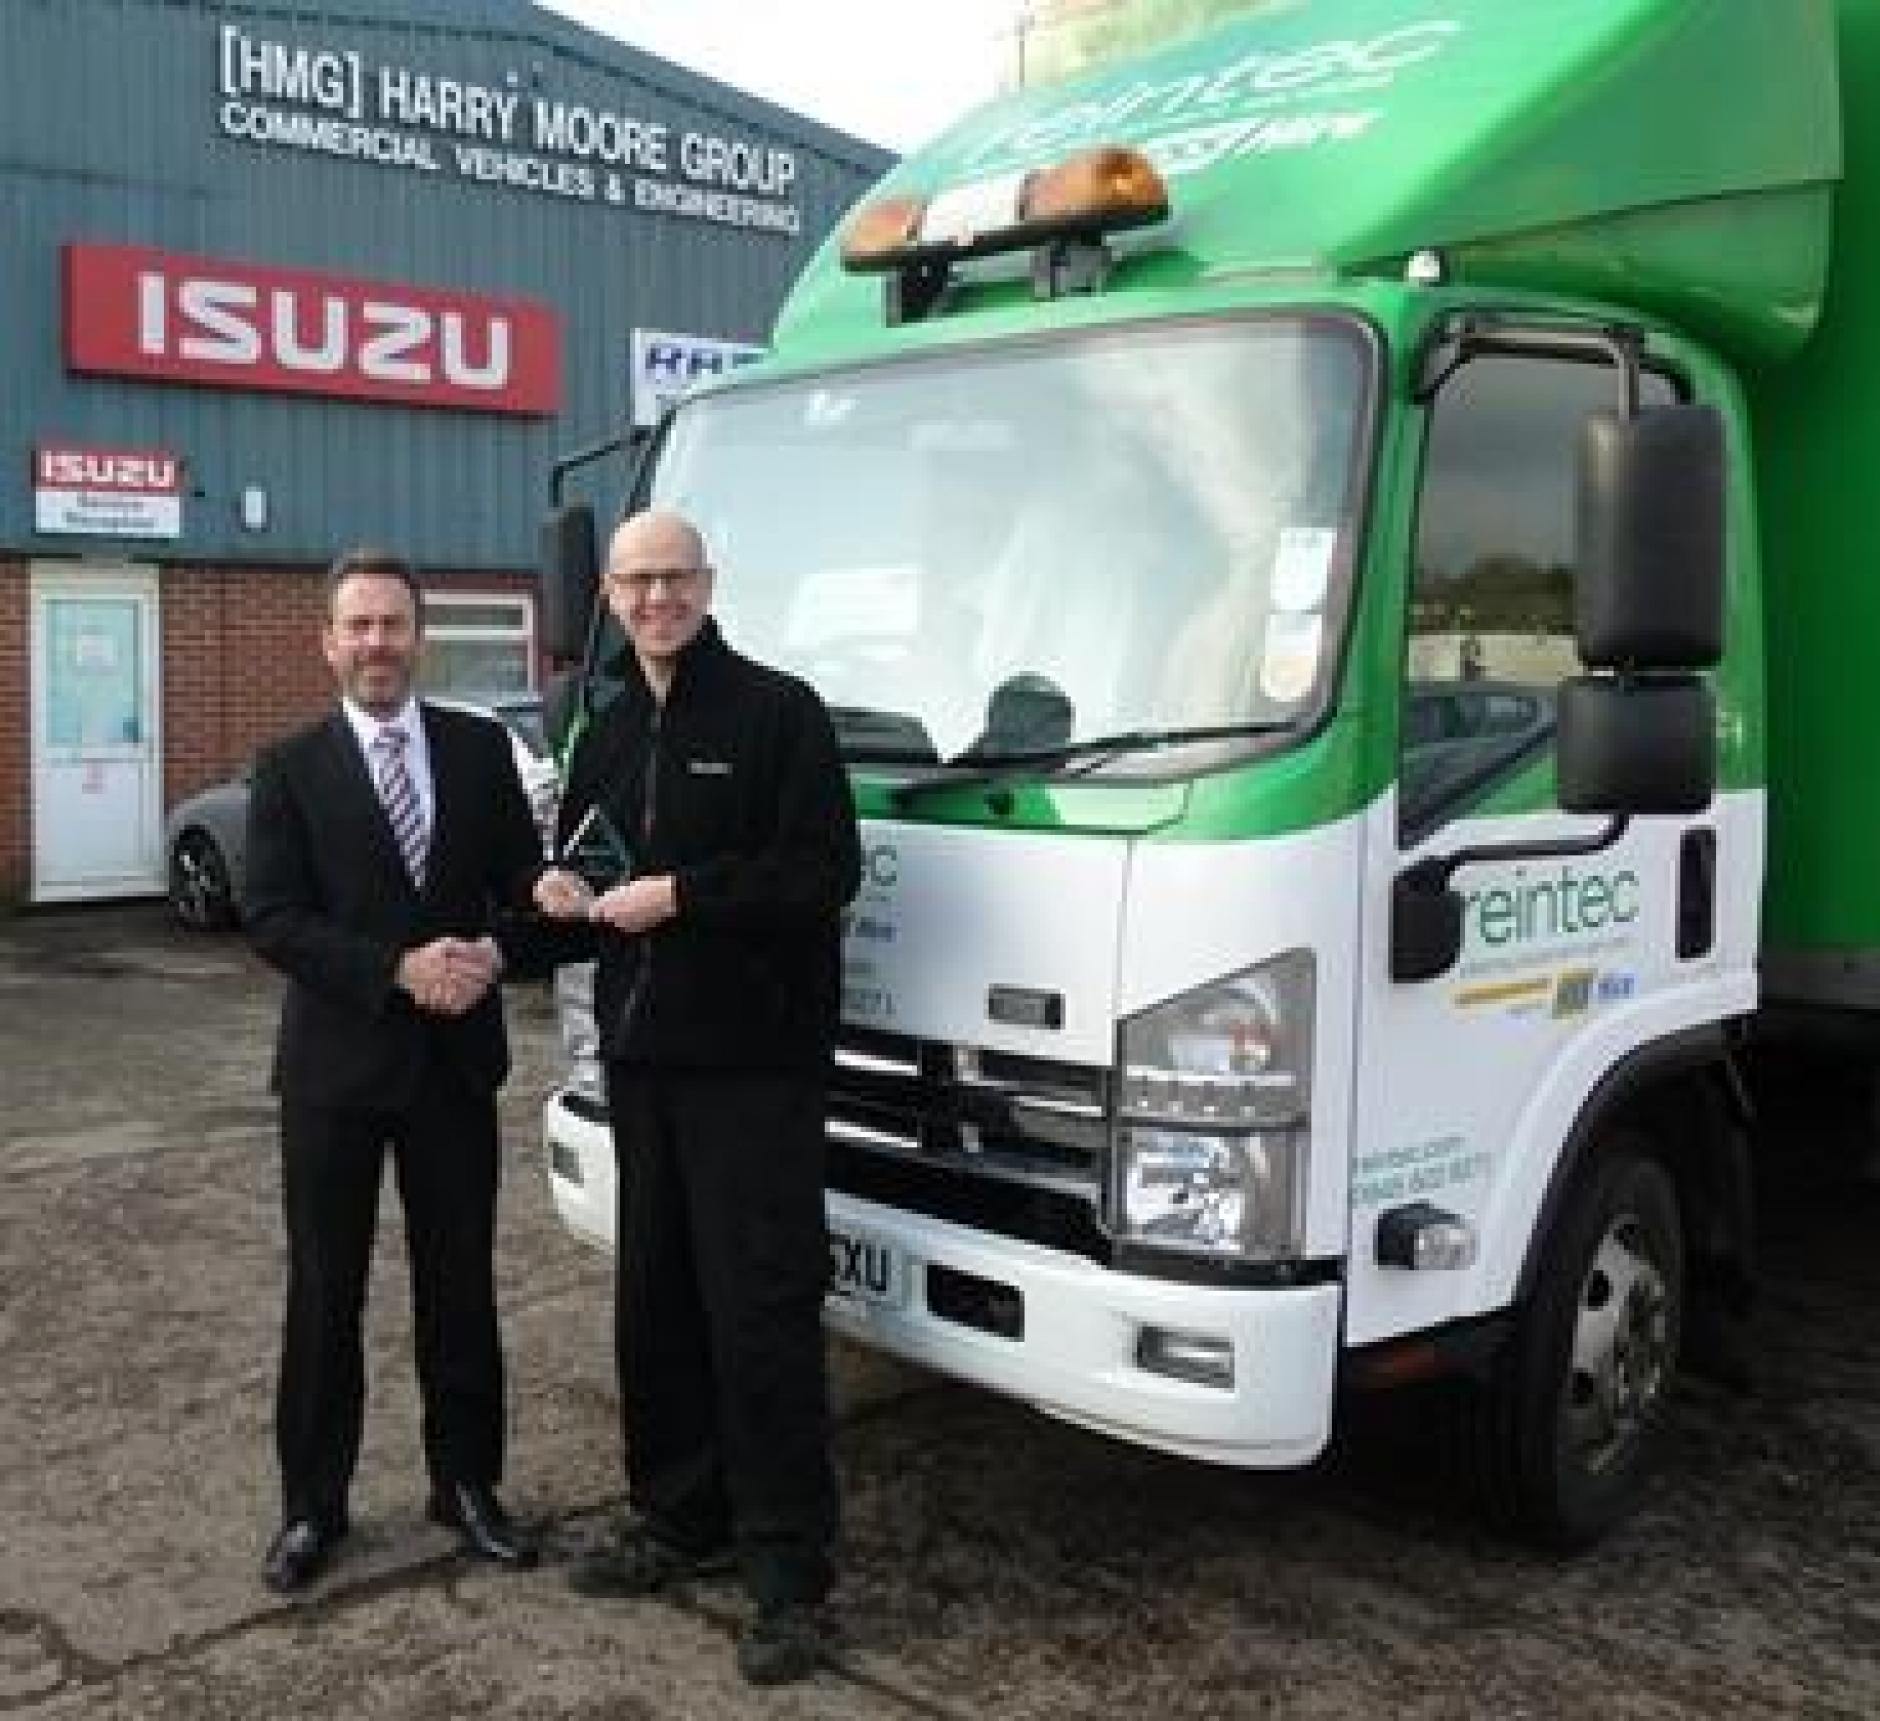 Matt Stubbs From Exeter Based Dealership Harry Moore Commercials Has Won  The Isuzu Truck UK Parts Manager Of The Year Award 2015.